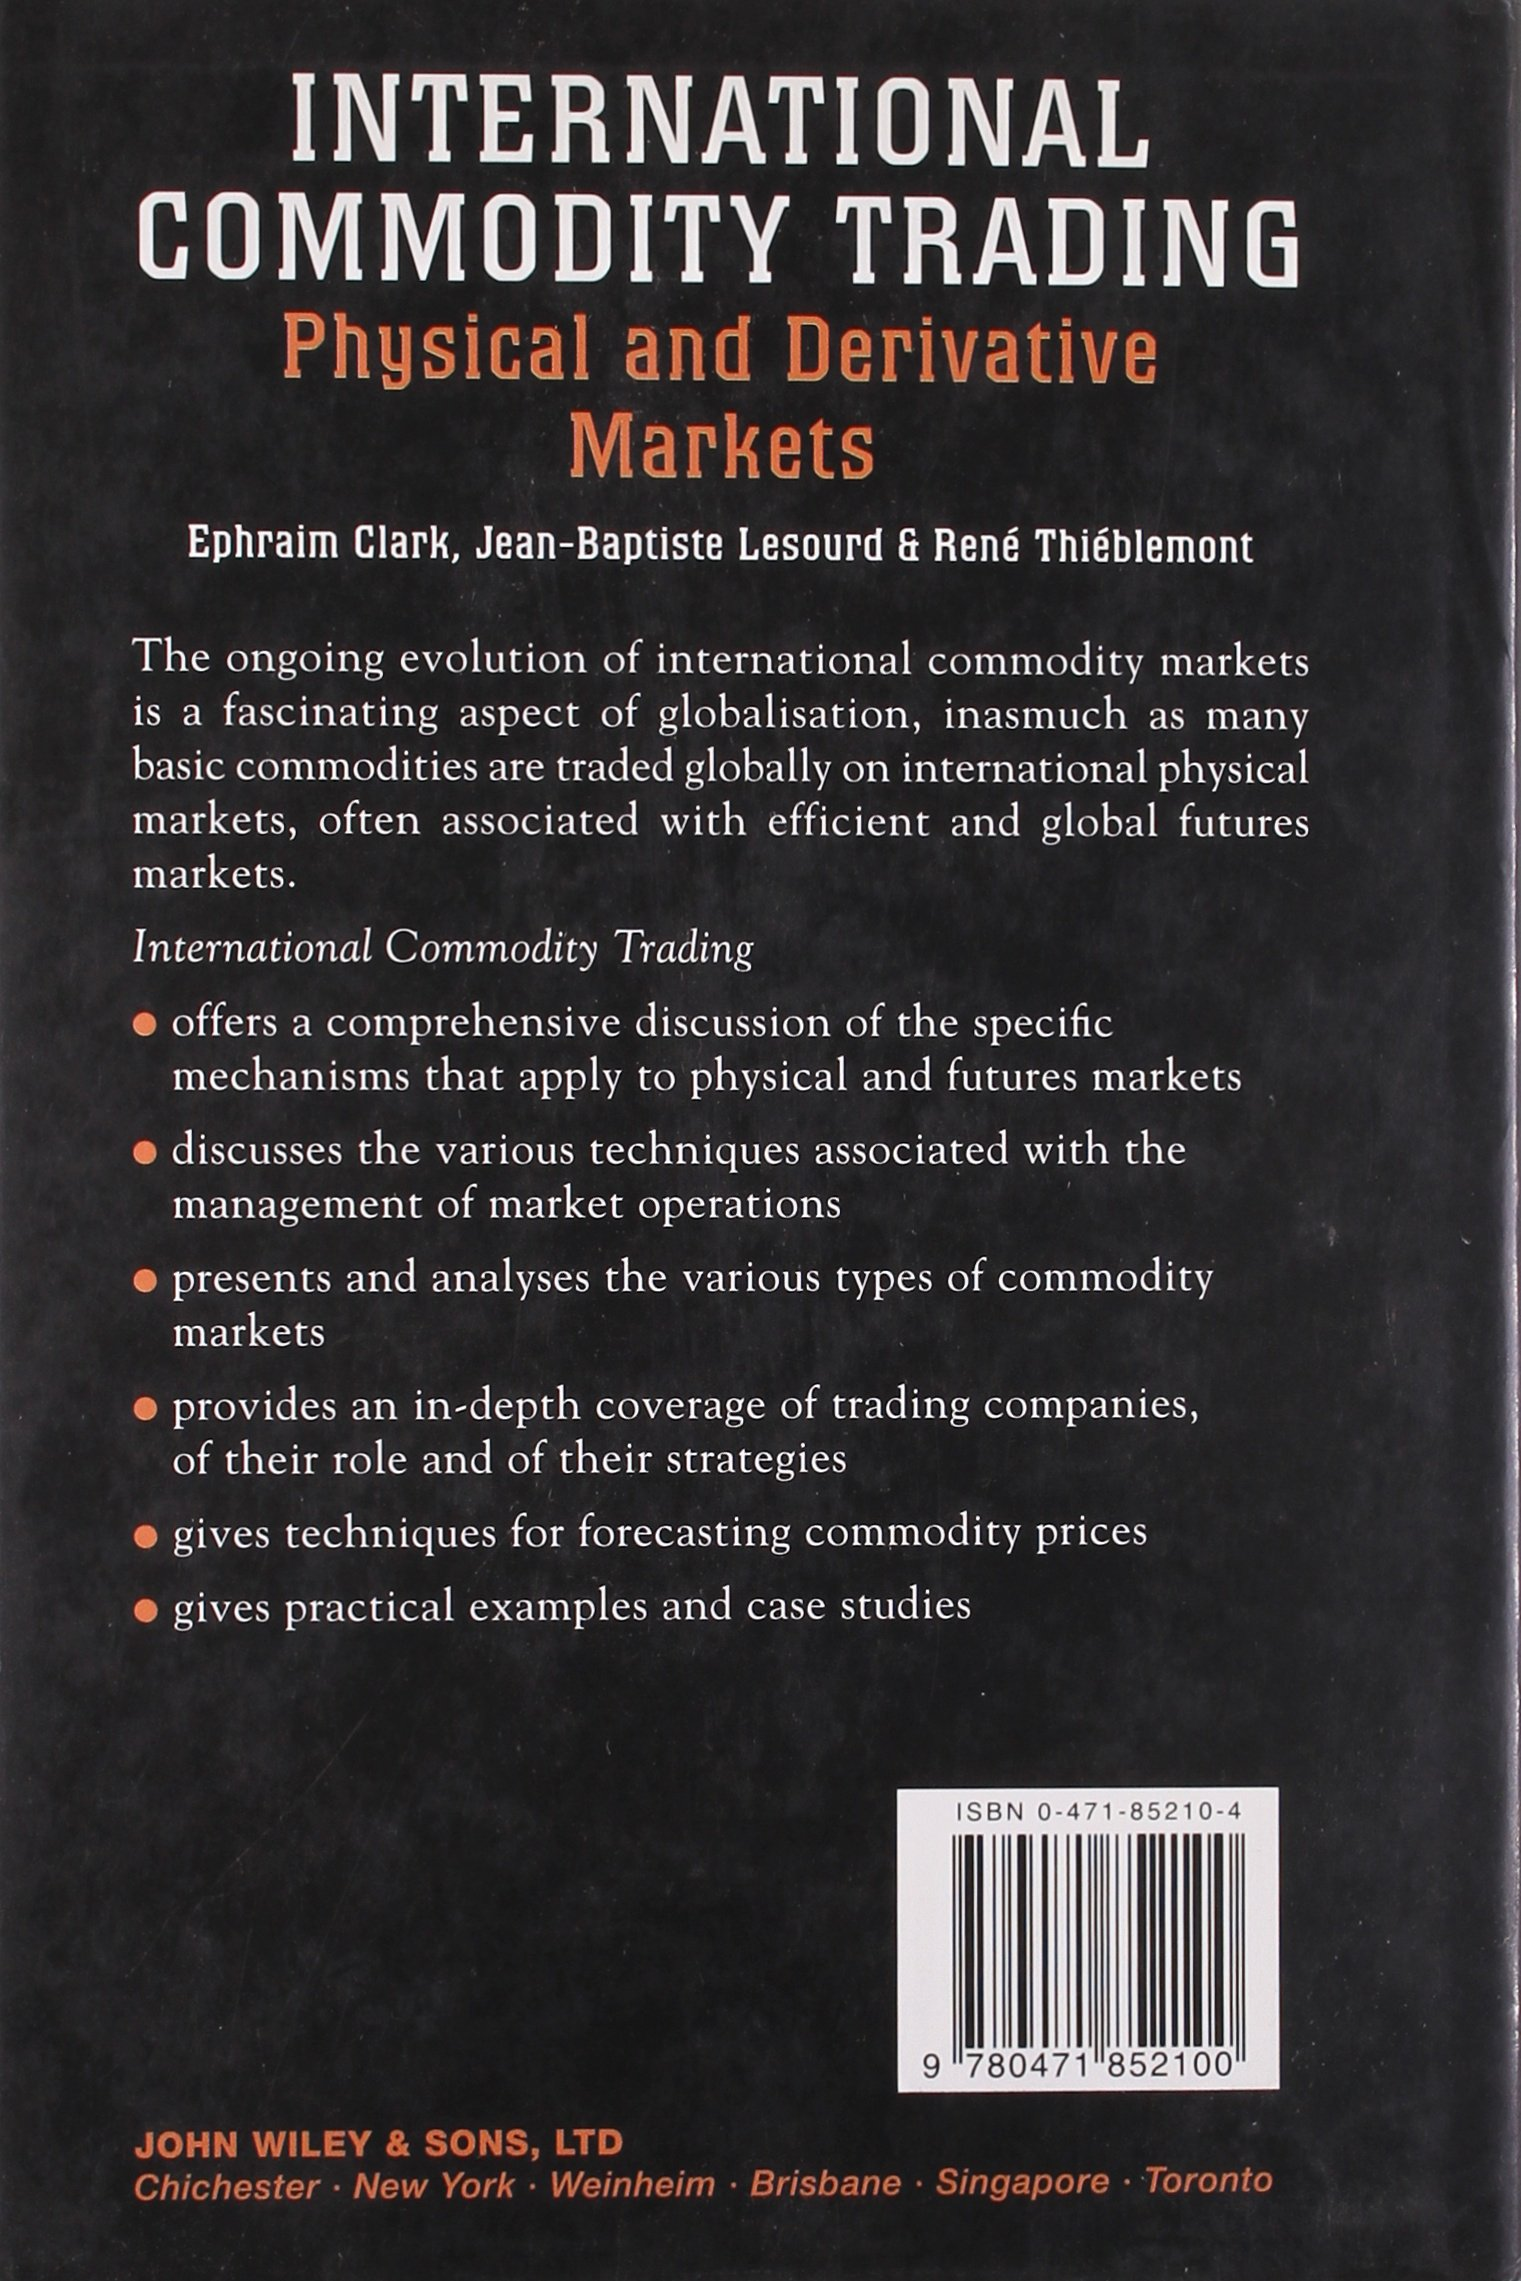 International Commodity Trading